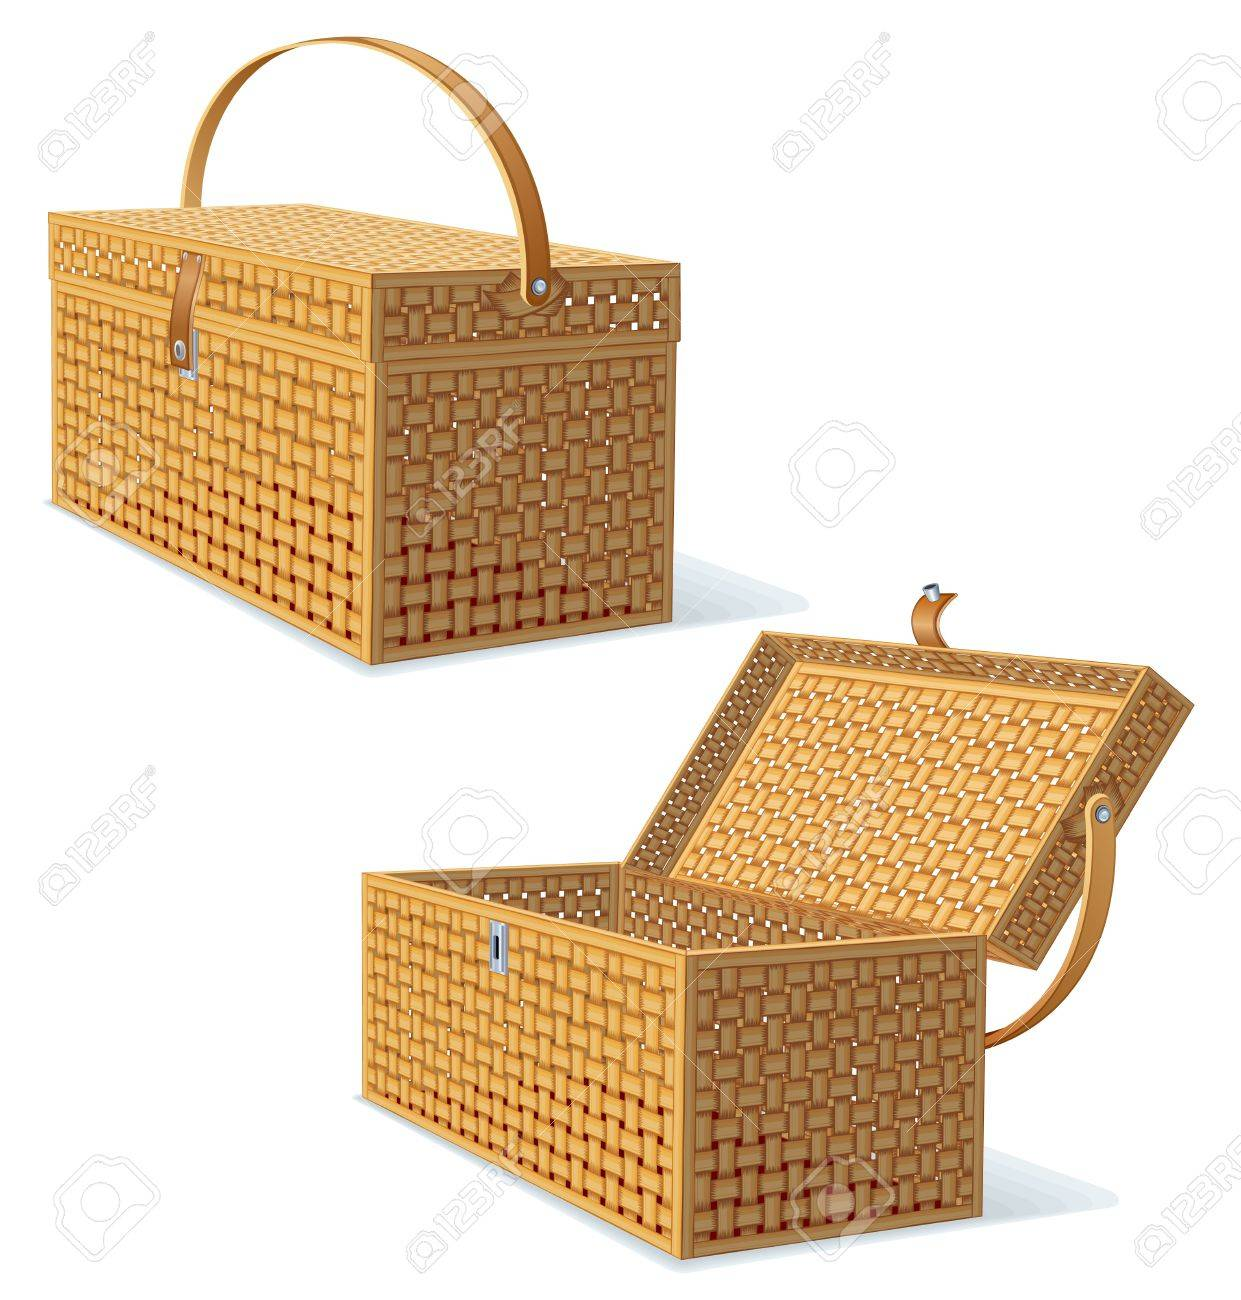 Picnic Hamper with Lid  Detailed Illustration Stock Photo - 20043230